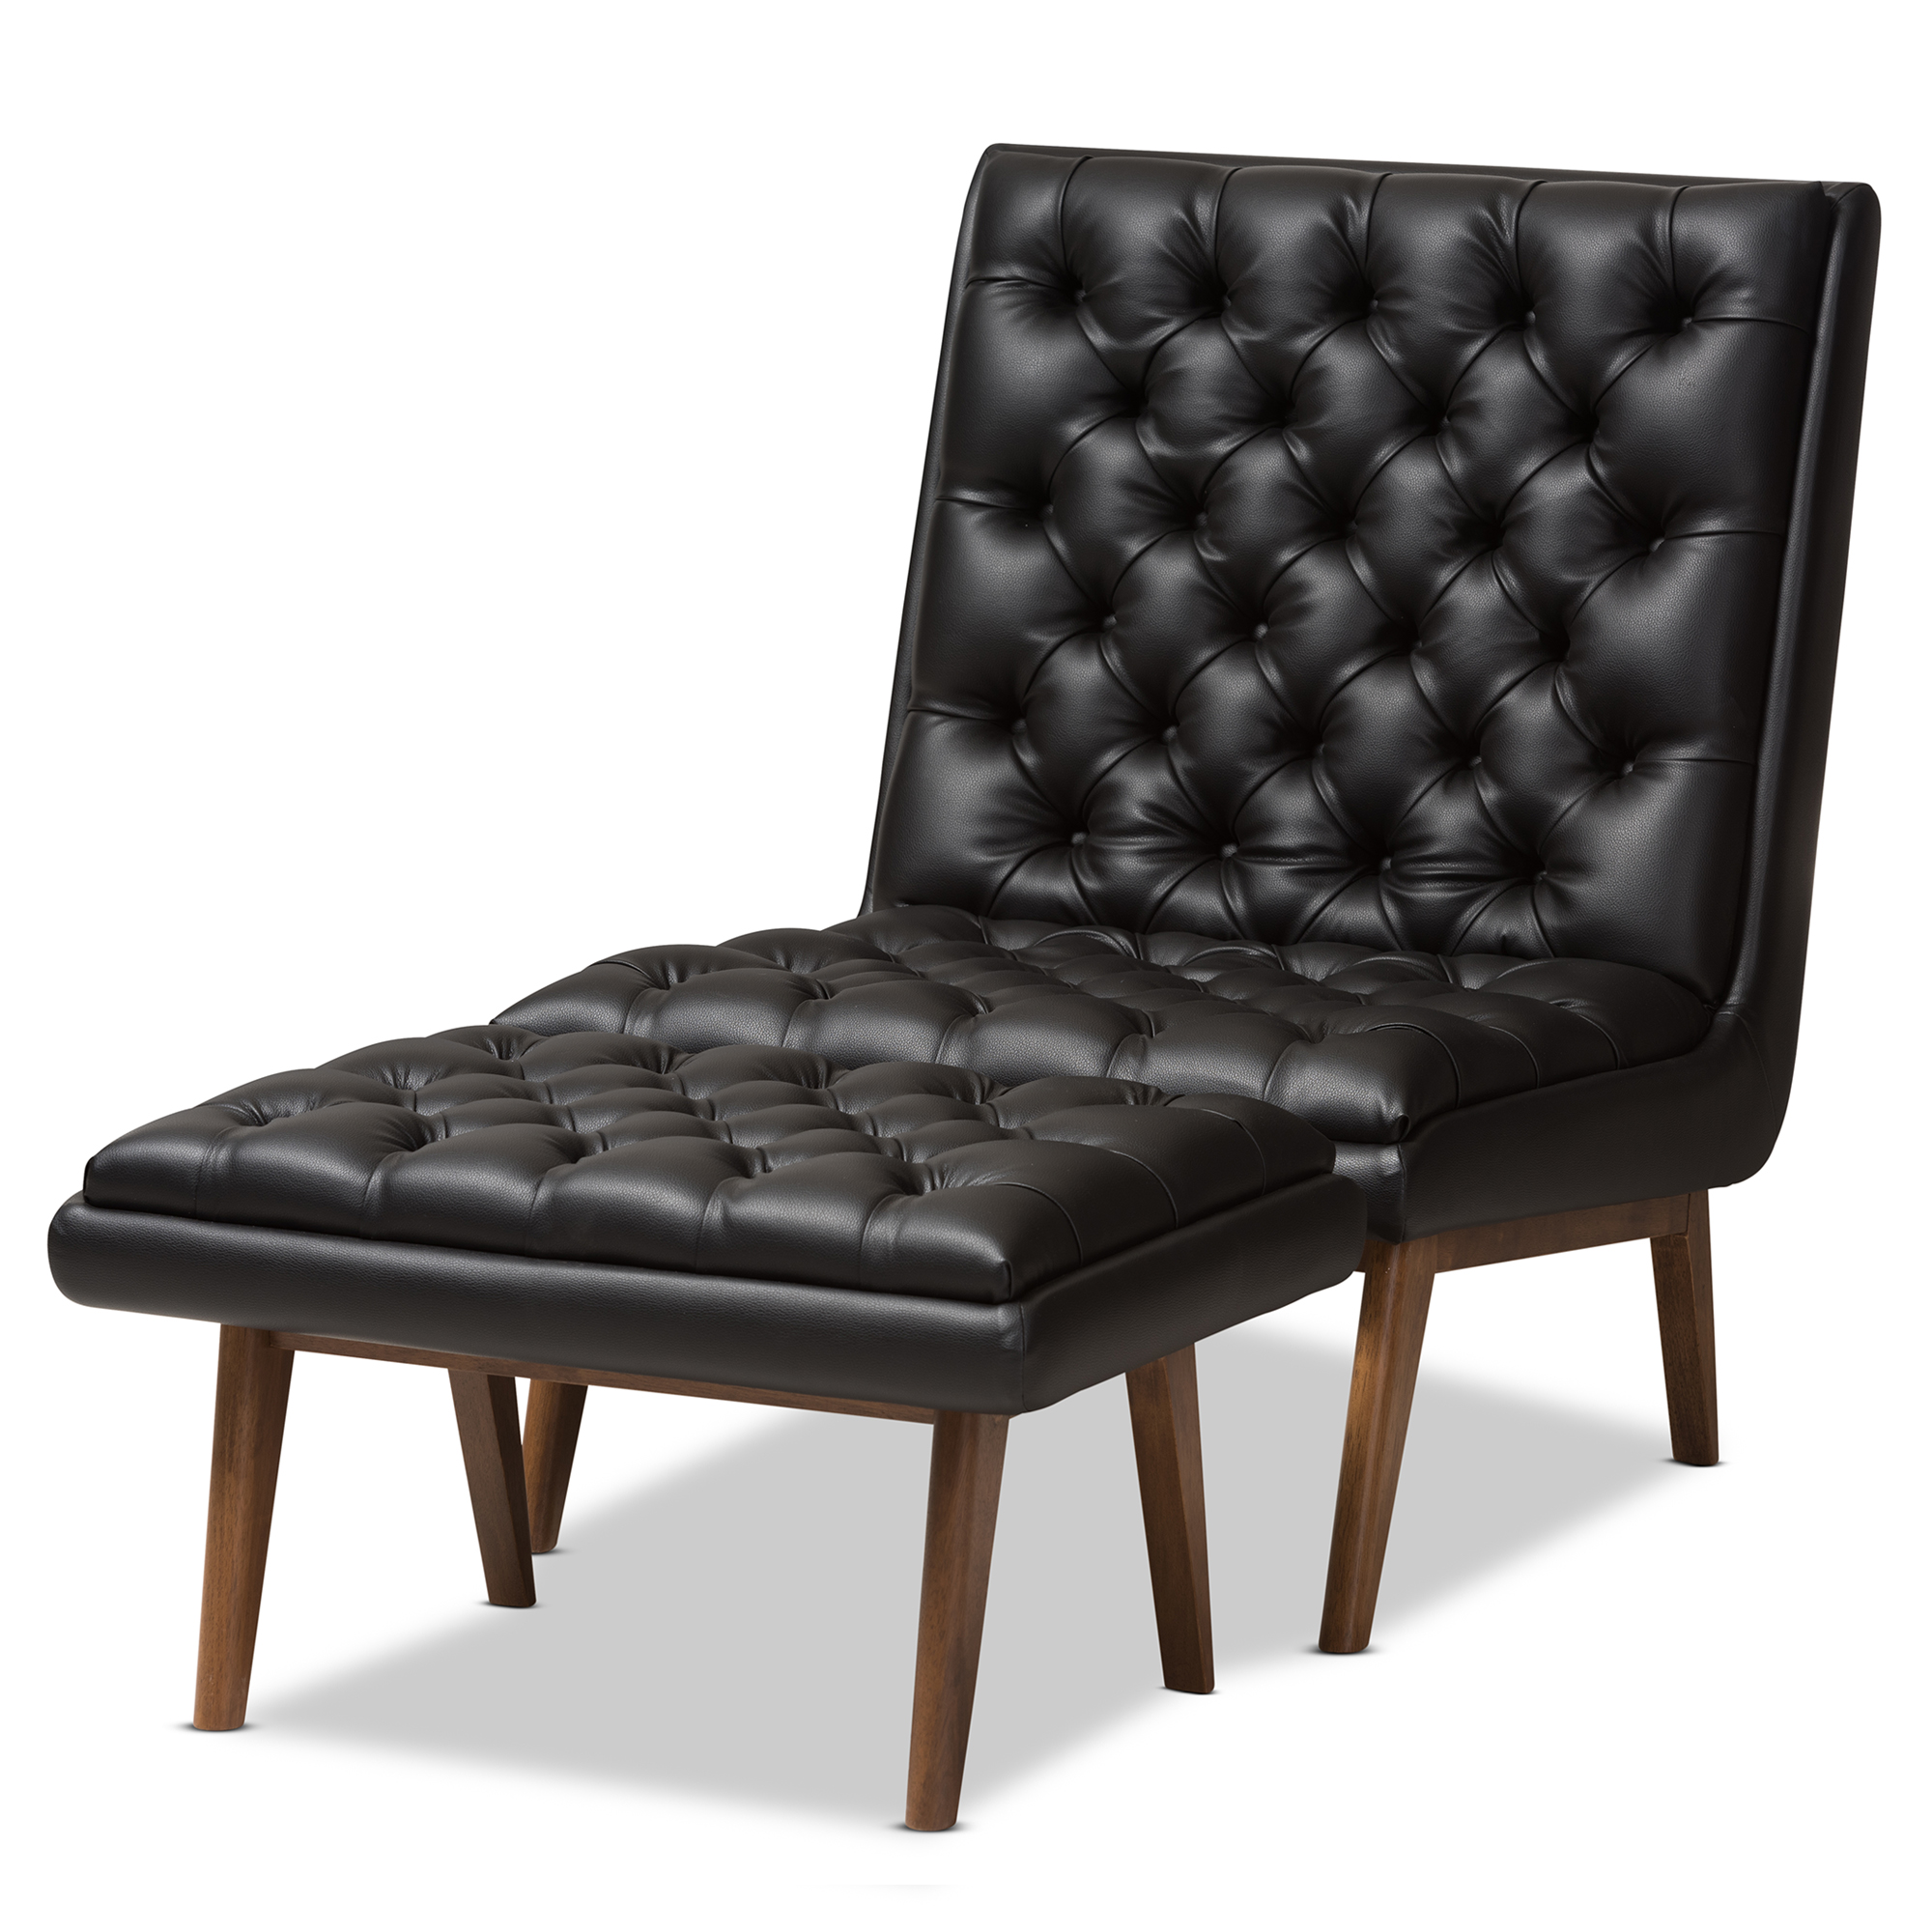 Baxton Studio Annetha Mid Century Modern Black Faux Leather Upholstered  Walnut Finished Wood Chair And